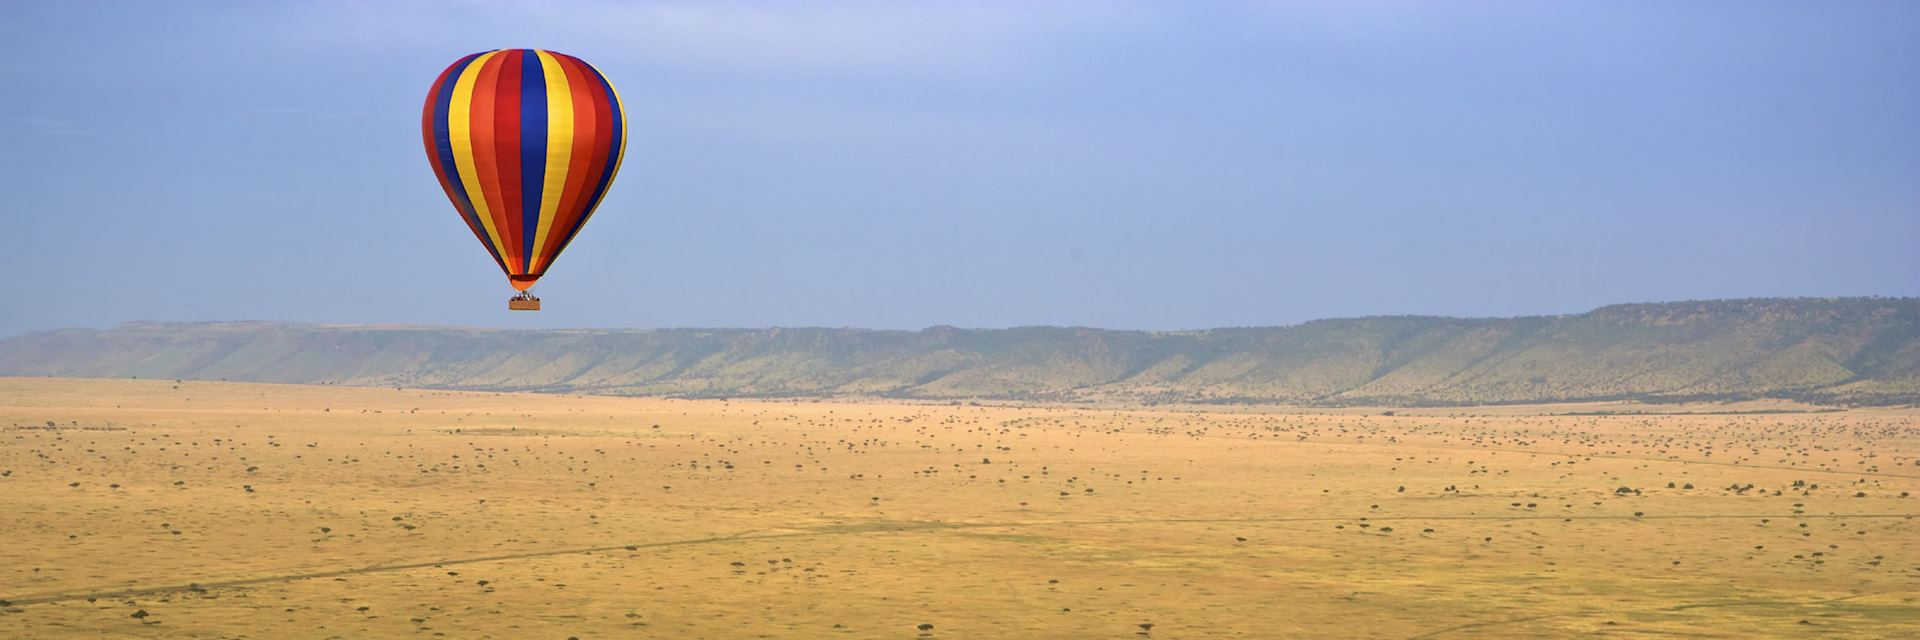 Balloon flight over the Masai Mara